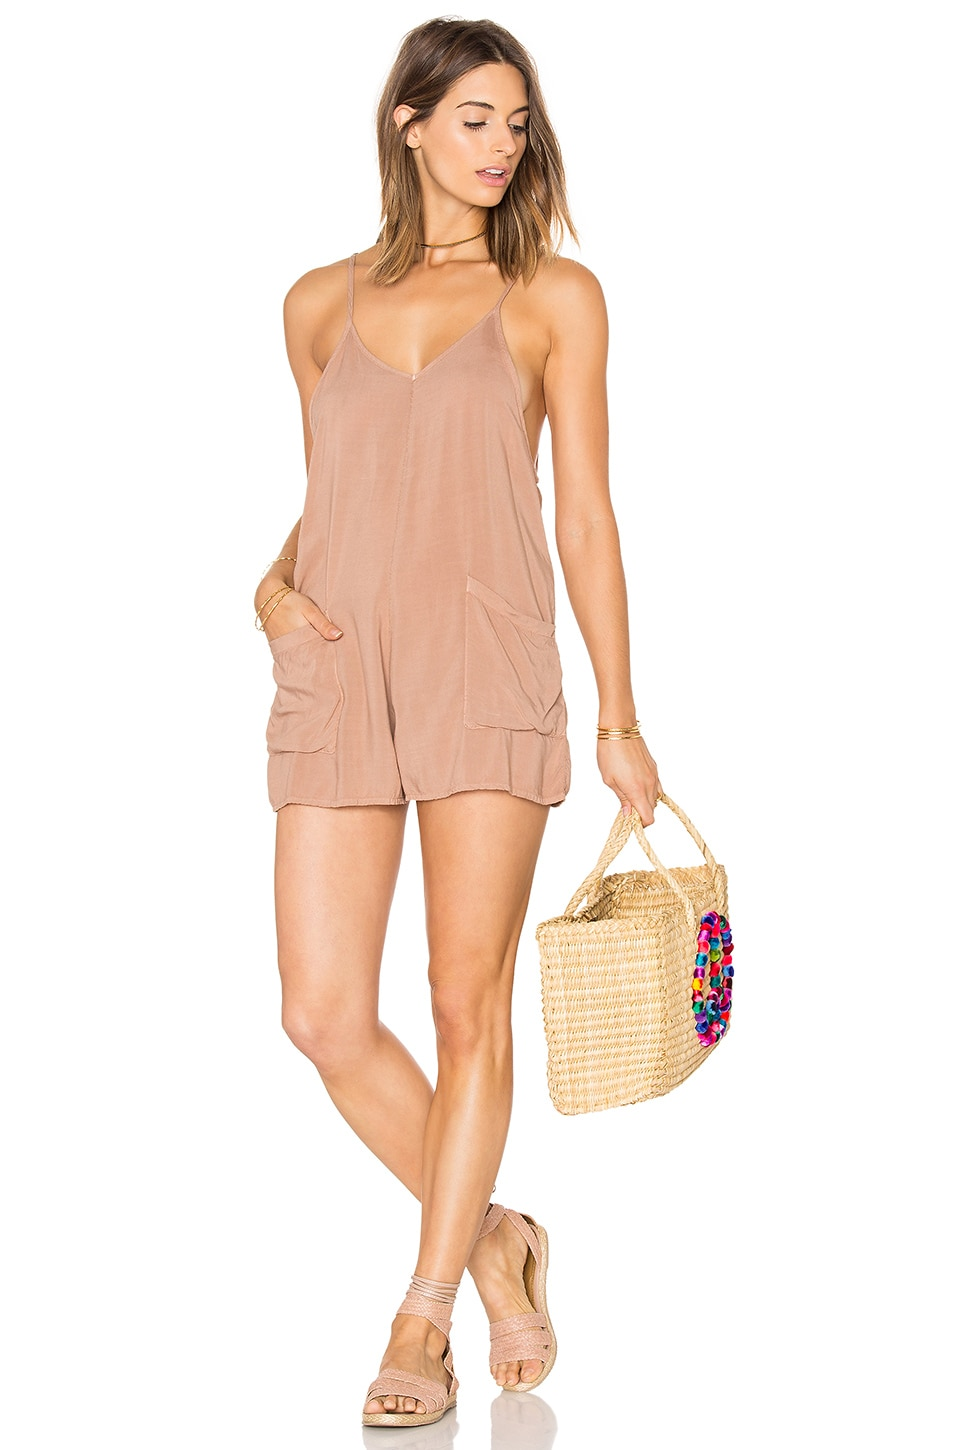 Mate The Label Riley Romper In Sand Revolve Roxy tee you're a daydream. usd